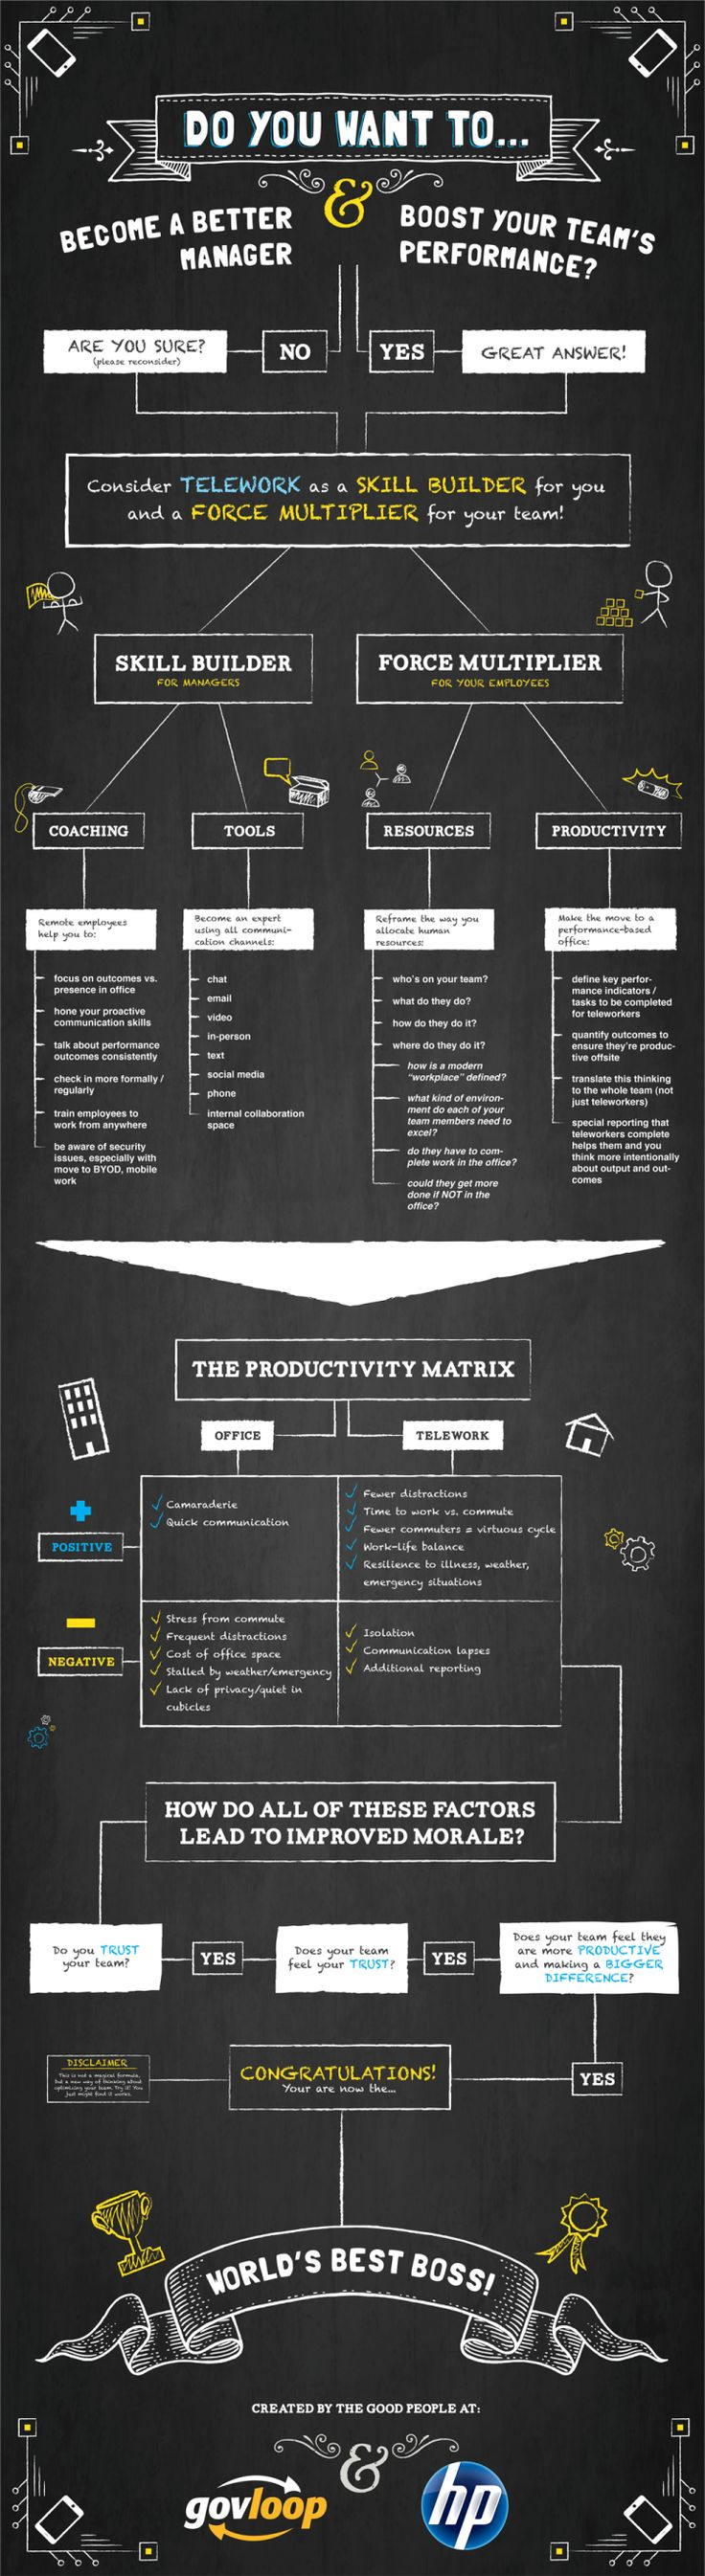 97 best images about Telework-Telecommuting-Infographics on ...